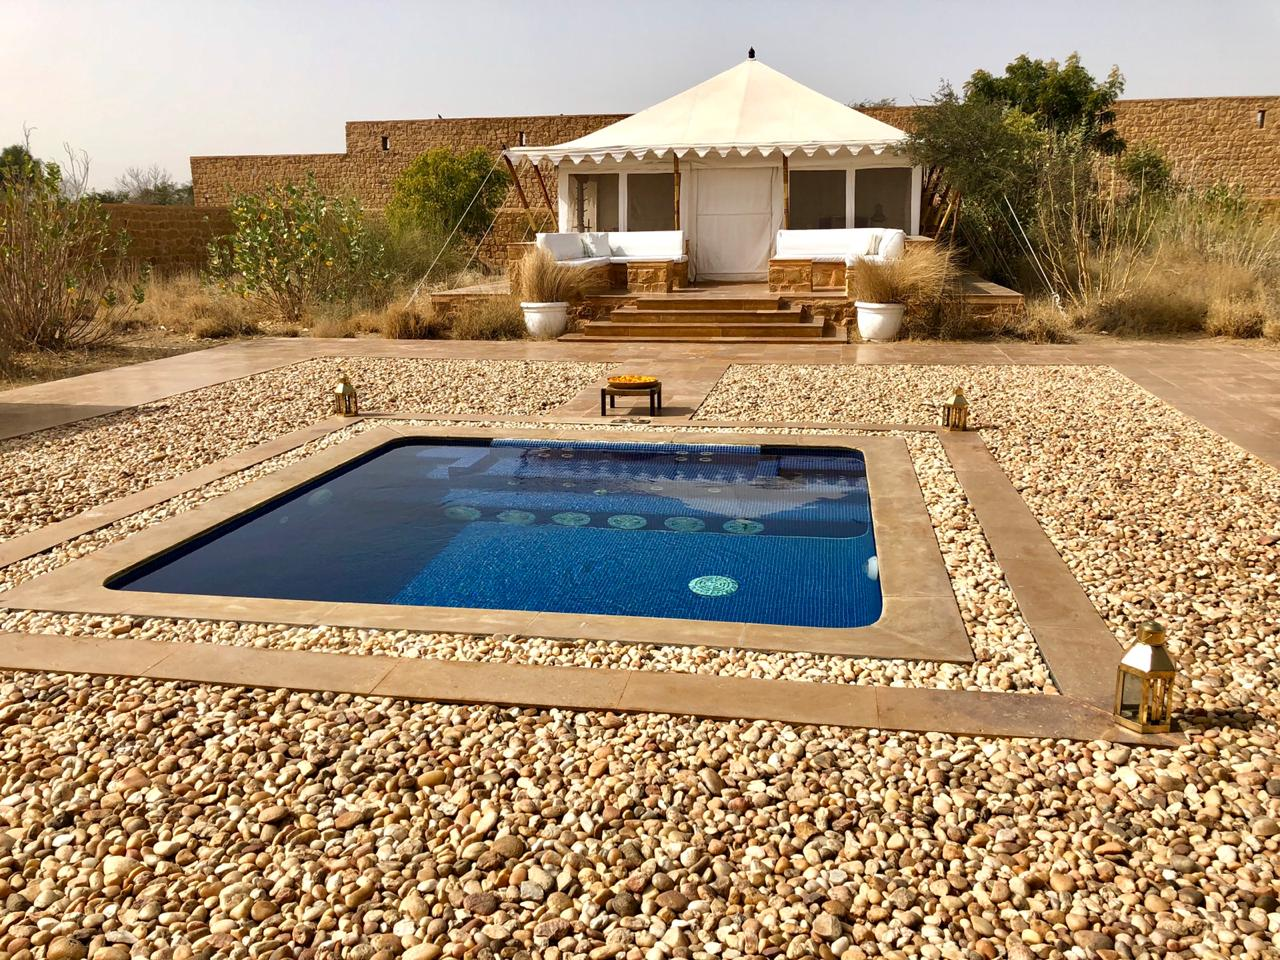 Luxurious Dessert Camp at serai, serai sujan jaisalmer, sujan the serai jaisalmer, the serai jaisalmer, The Serai Sujan,